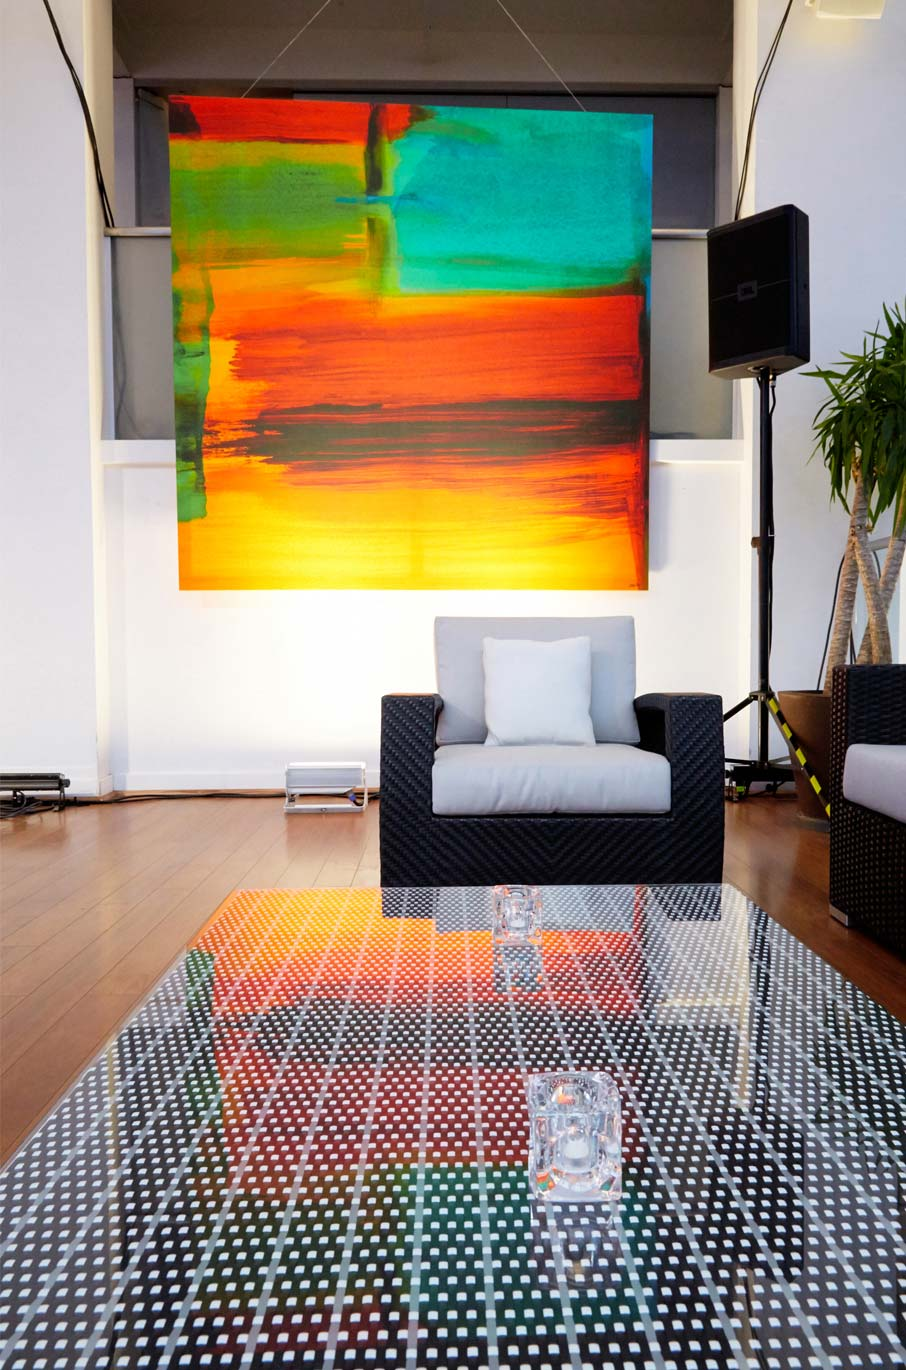 ZayZay-African-Sunset-duvet-cover-as-art-hanging-on-wall